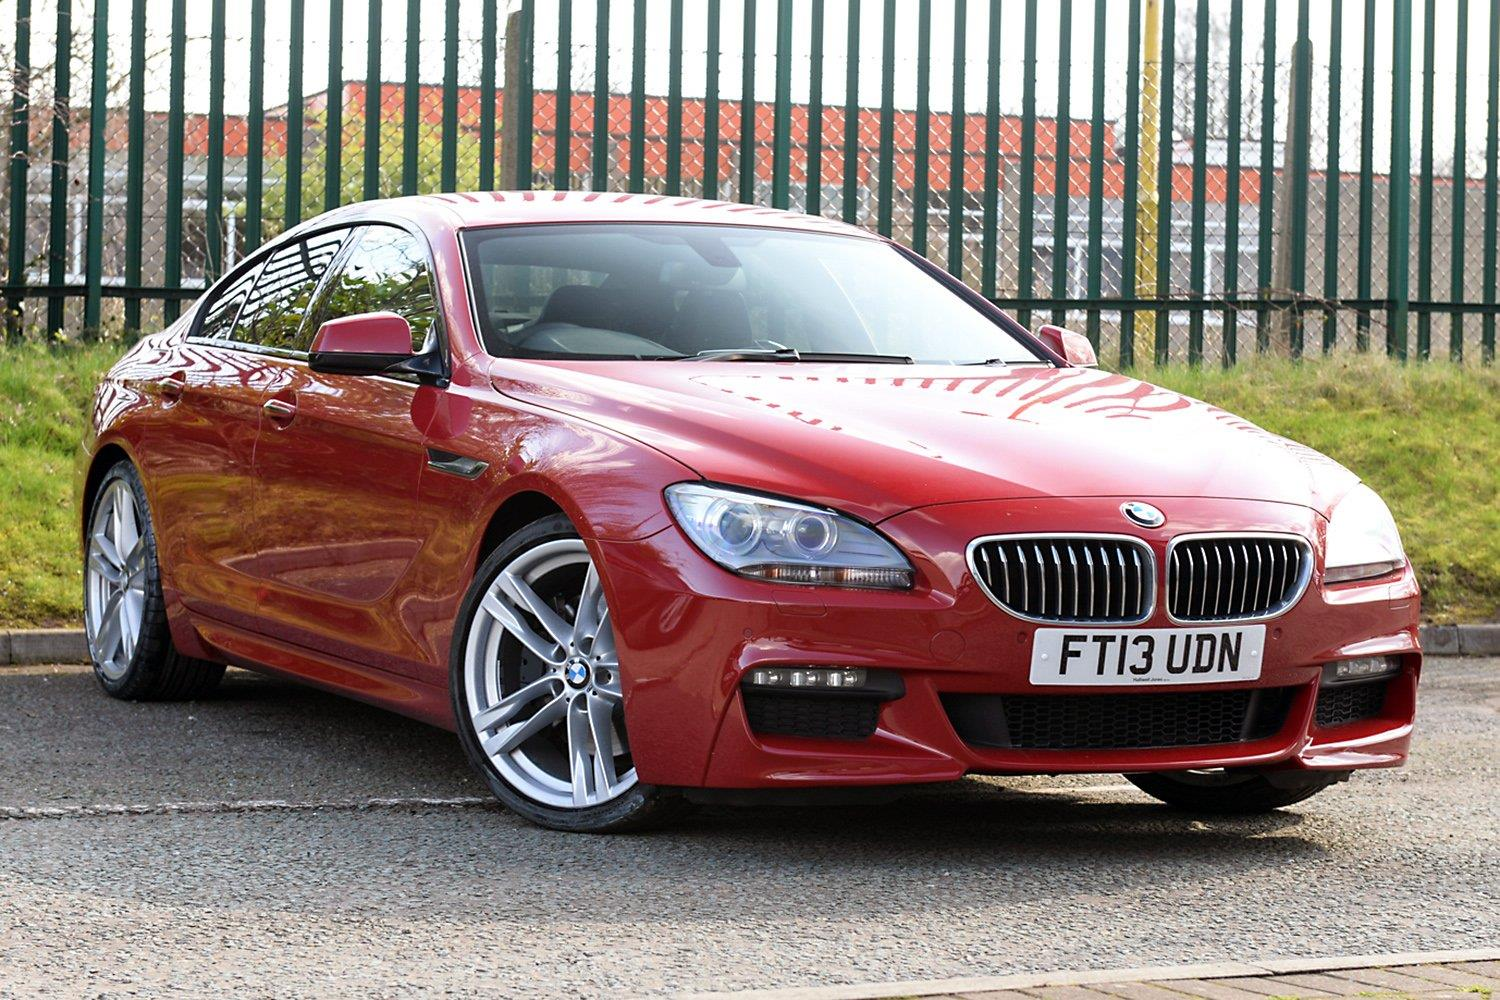 BMW 6 Series Gran Coupé FT13UDN - Image 3